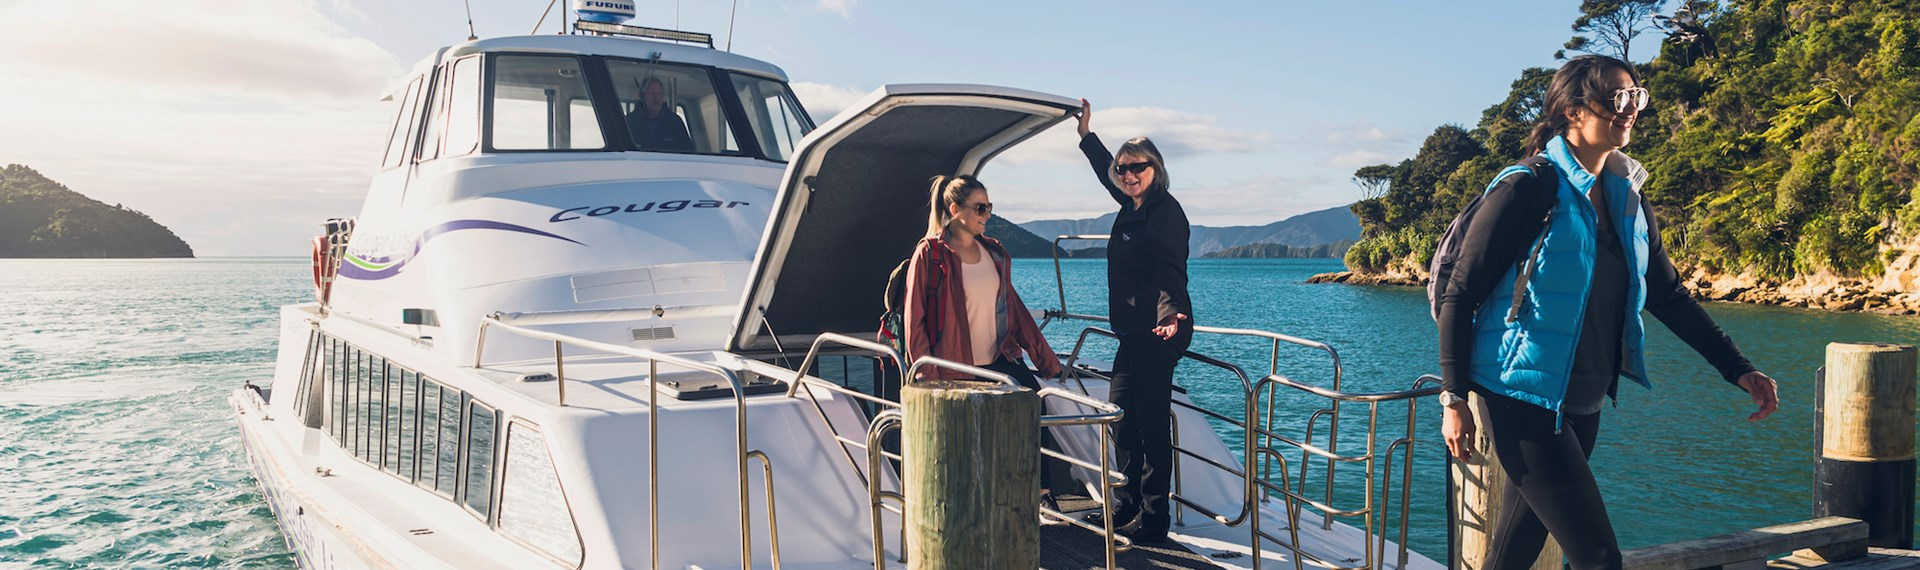 Two walkers disembarking from the Cougar Line boat at Ship Cove/Meretoto ready to walk on the Queen Charlotte Track.